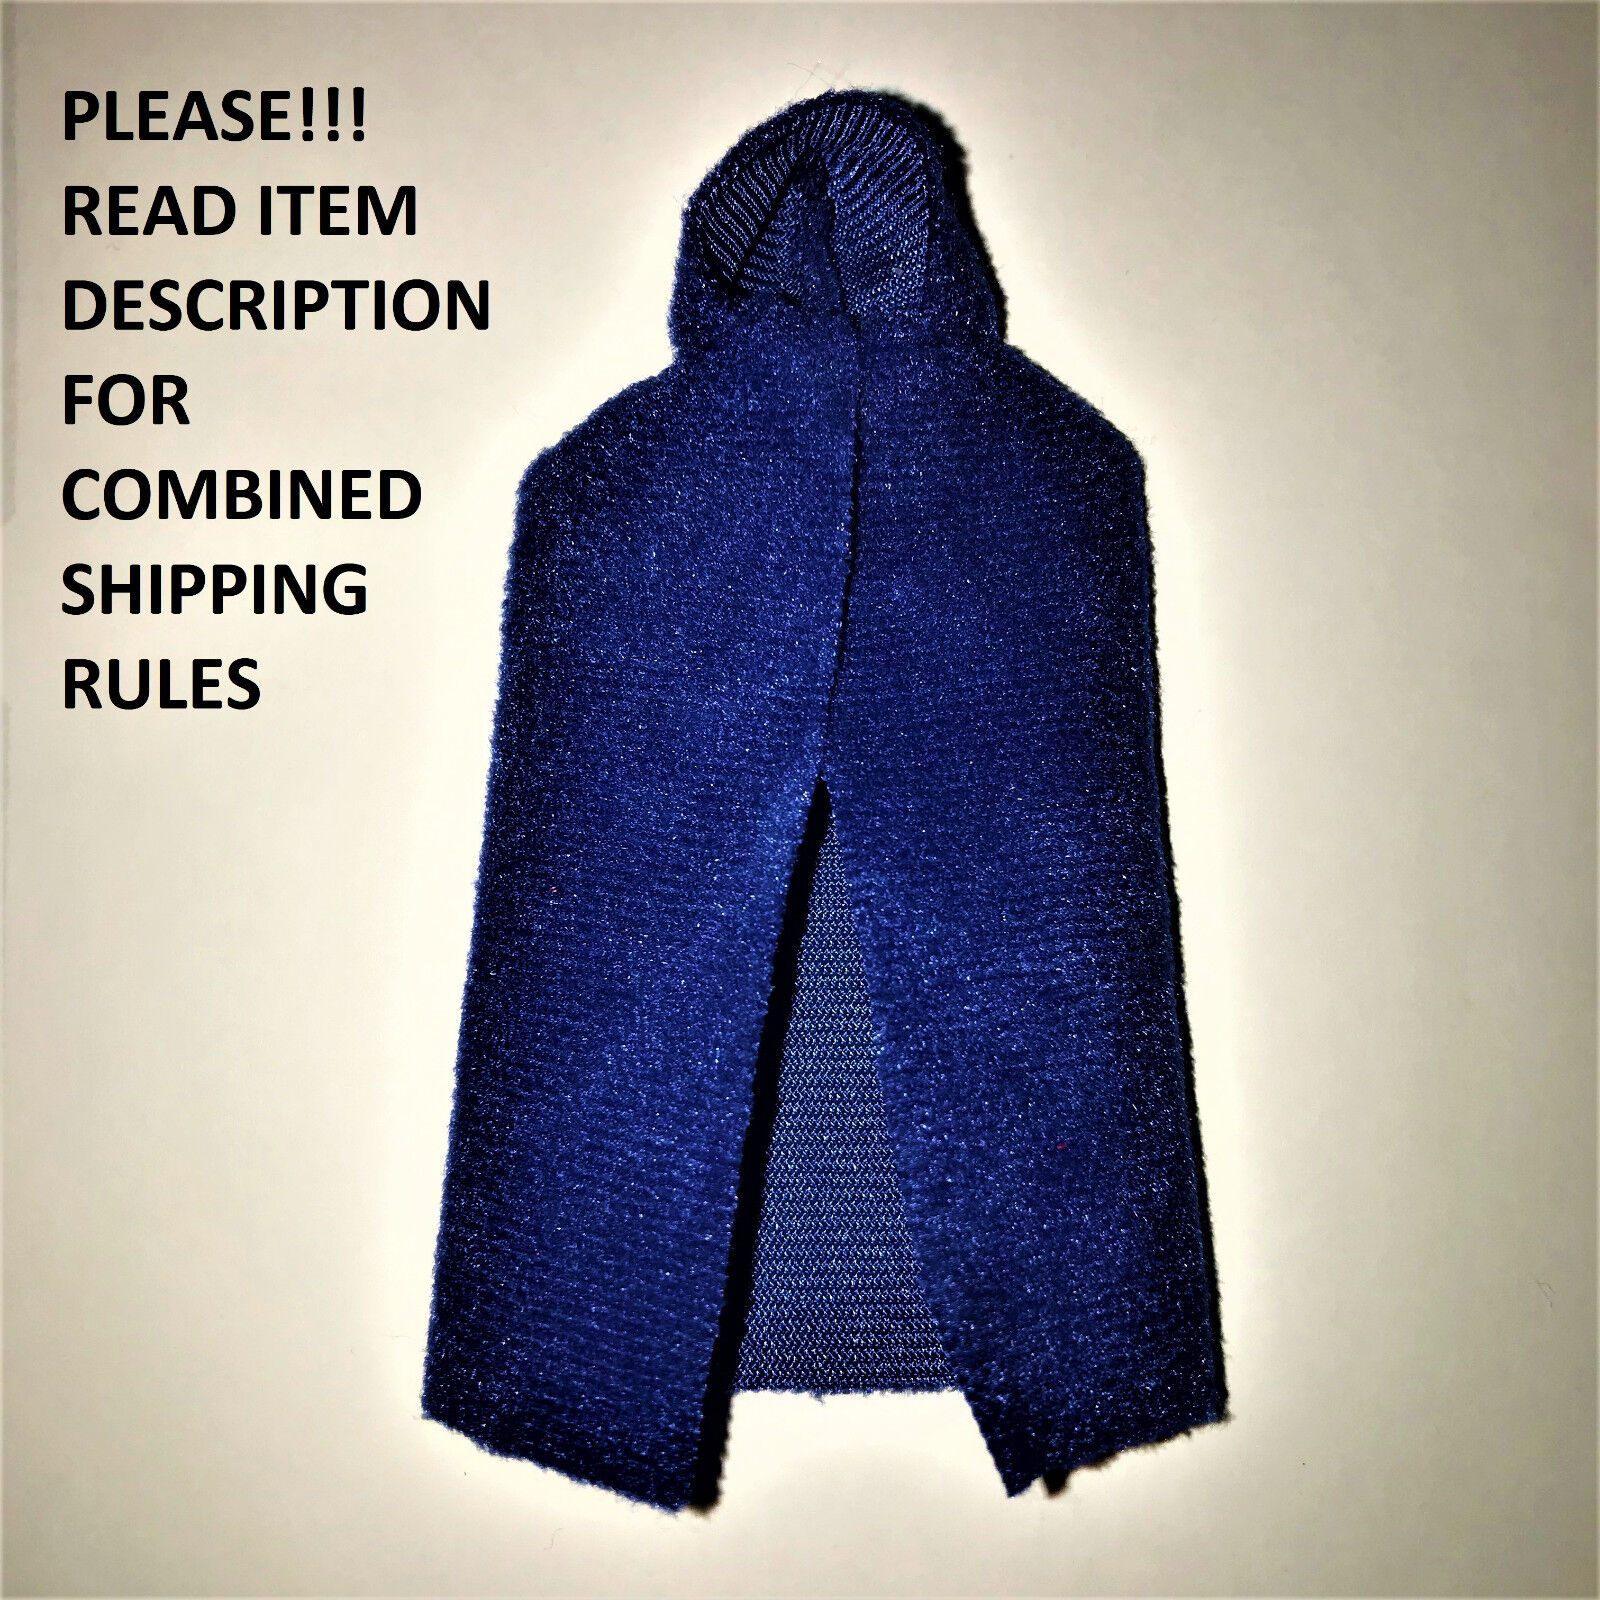 Repro Cape Hood Star Wars Replacement Luke Skywalker Jedi Robe